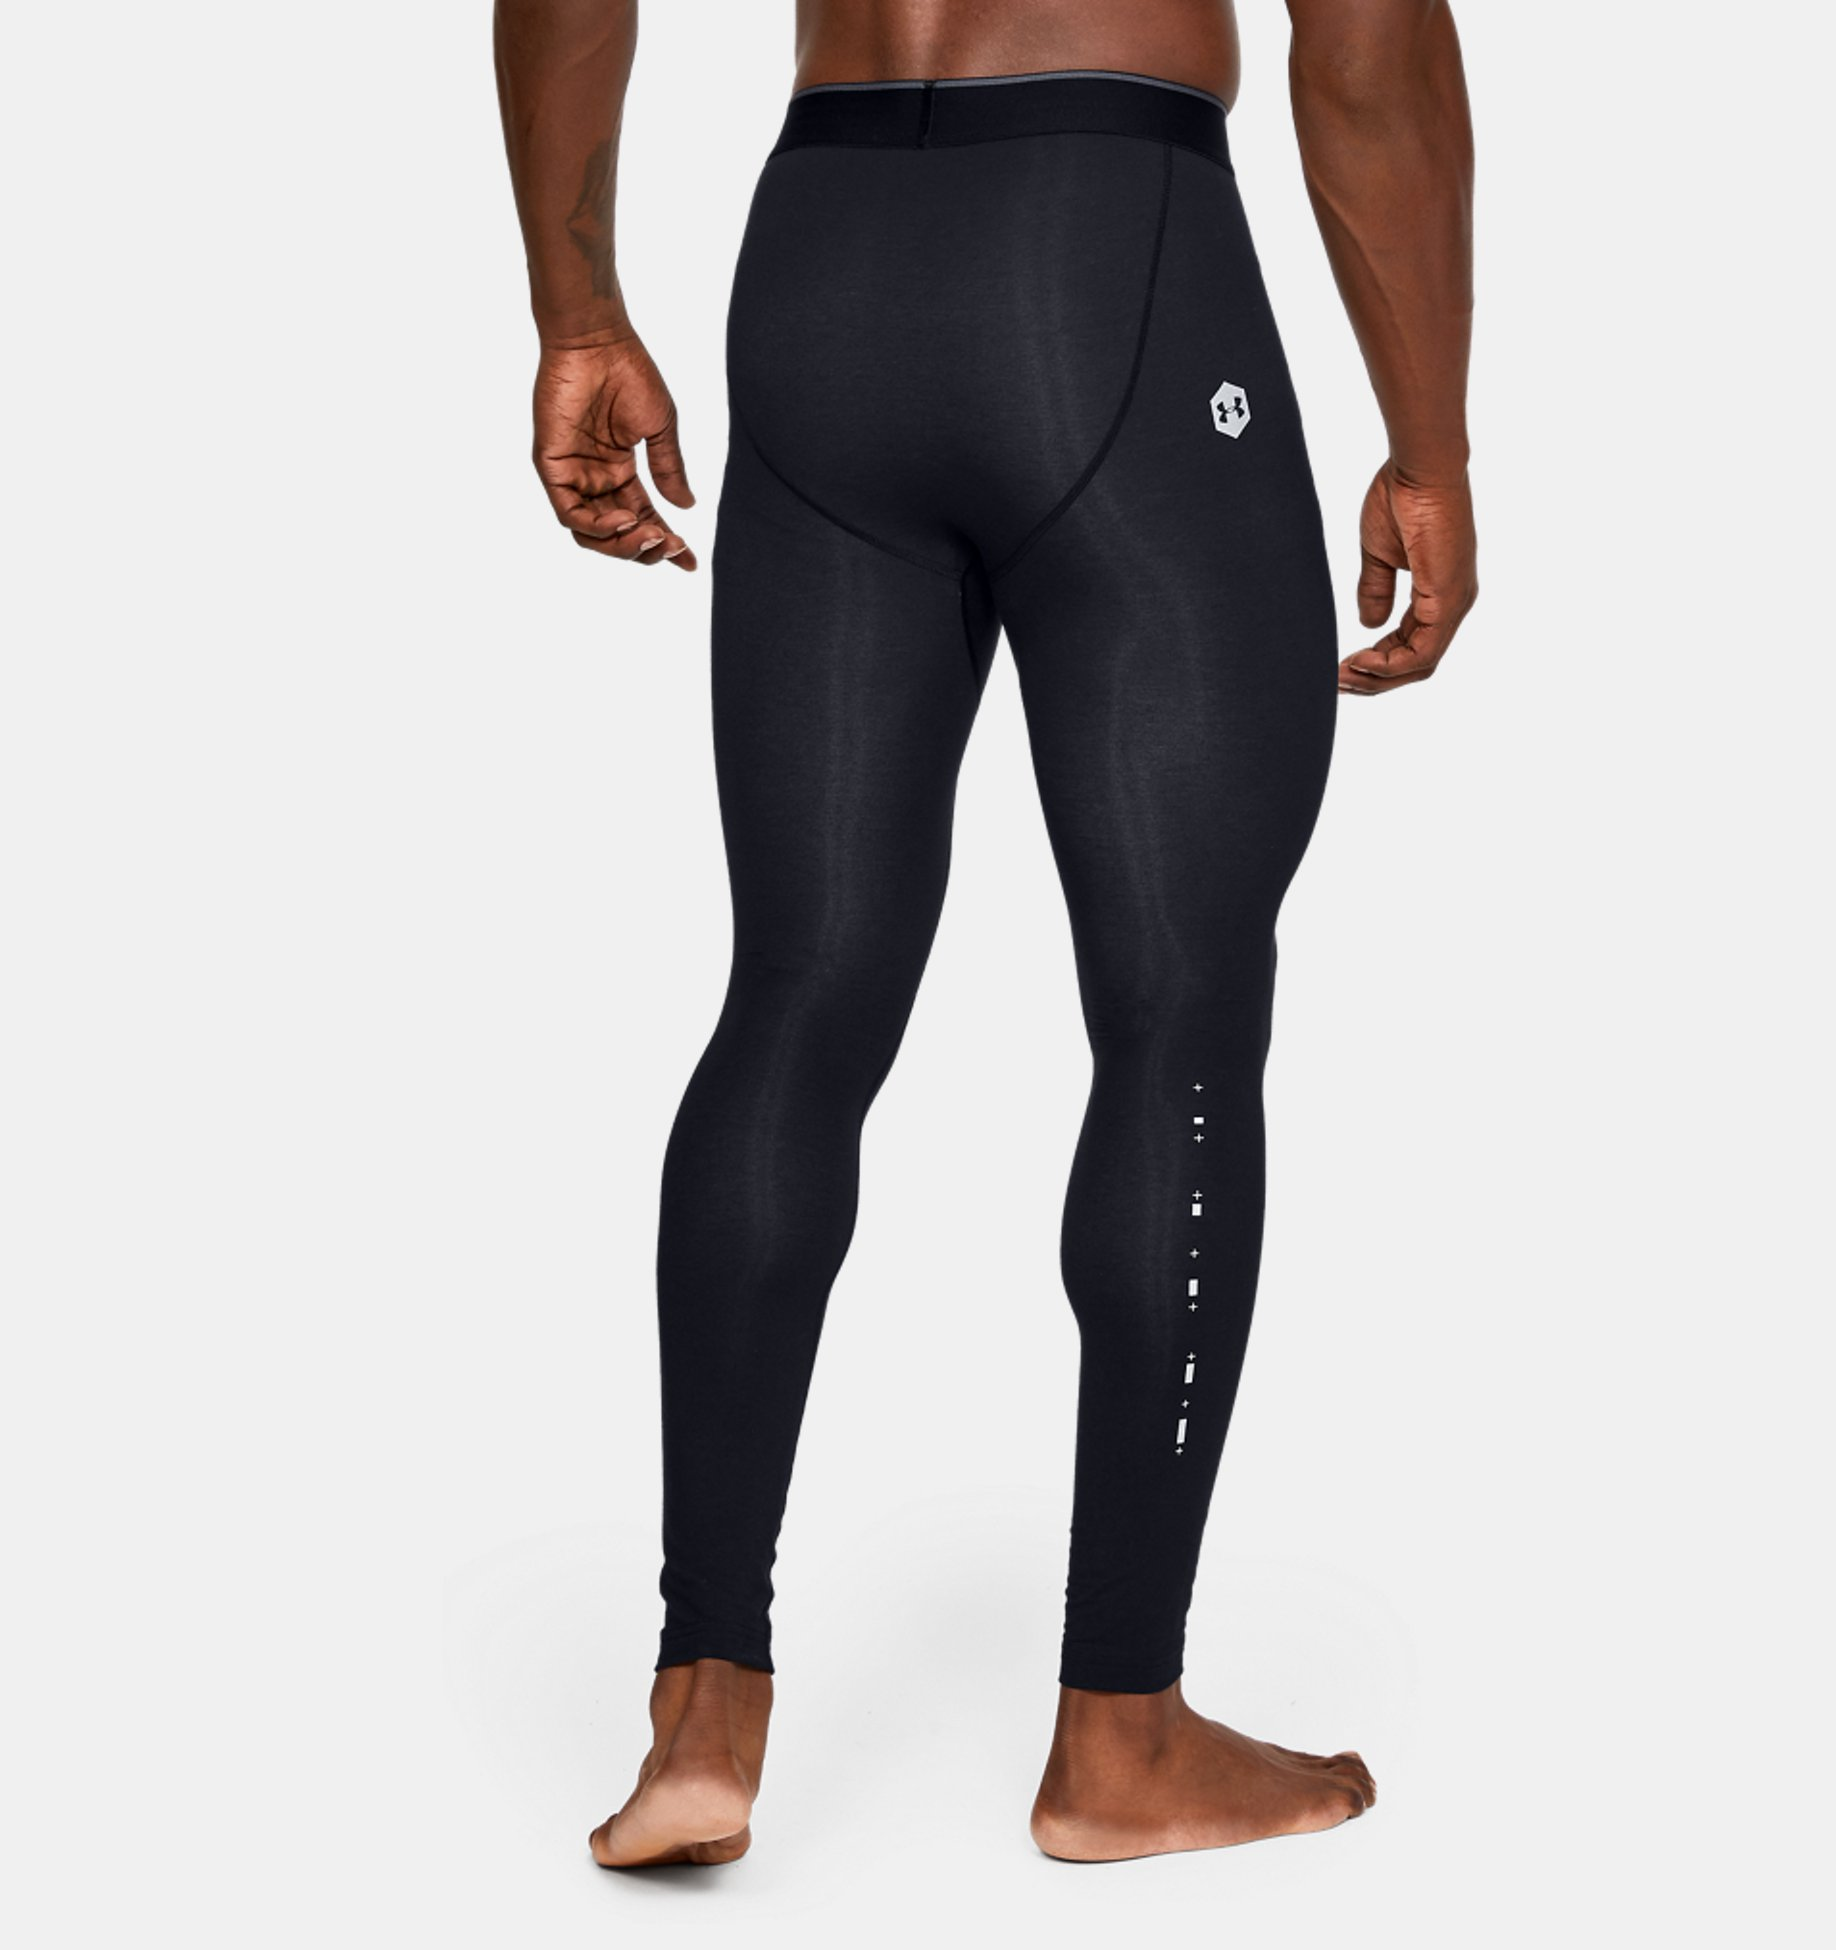 ca5122f738 Men's Athlete Recovery Compression™ Leggings | Under Armour AU